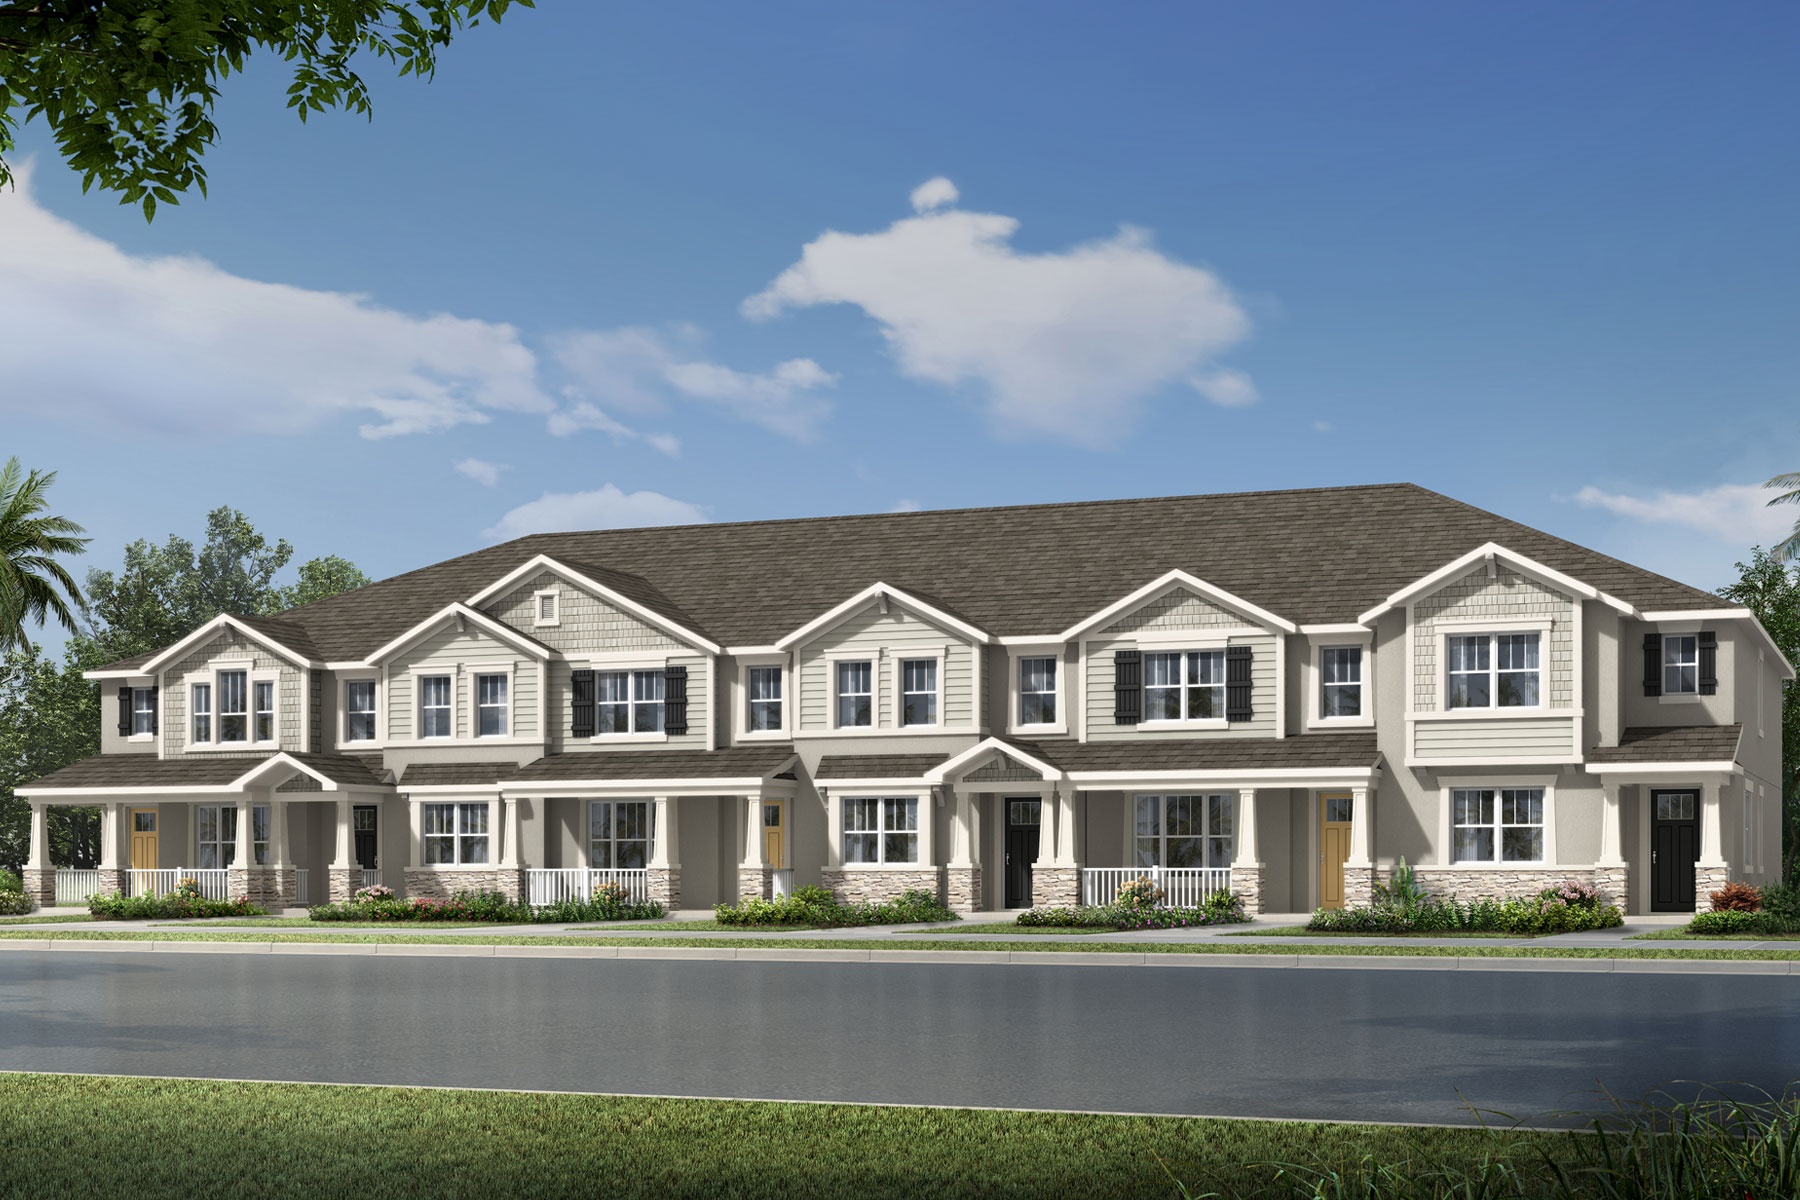 Amber Plan TownHomes at Legado in Windermere Florida by Mattamy Homes